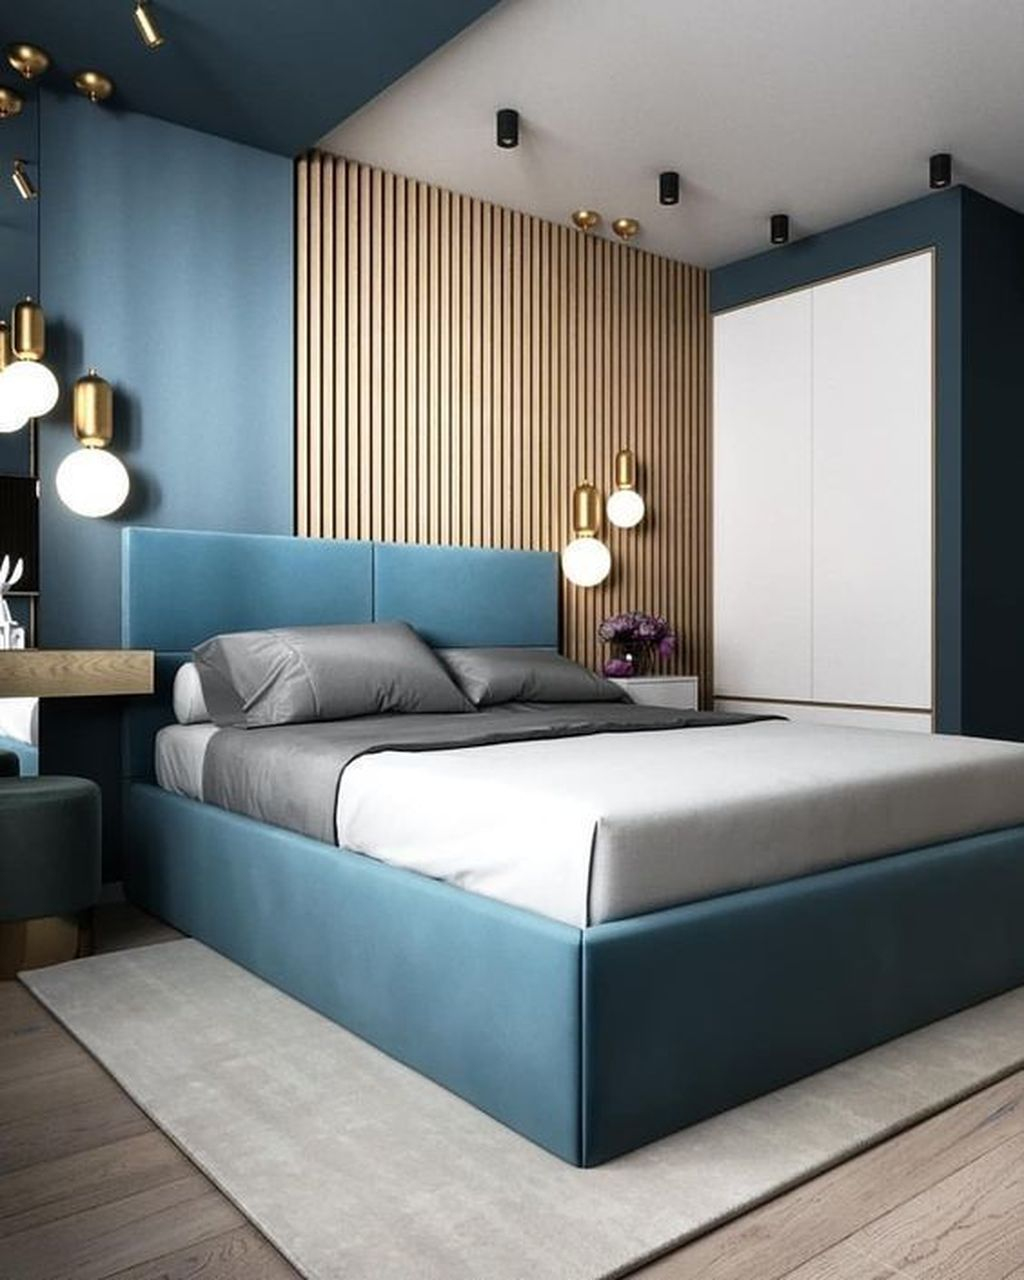 bedroom, grey wooden floor, blue wall, white wall, wooden grid wall, blue headboard, pendants, blue side table, white side cabinet